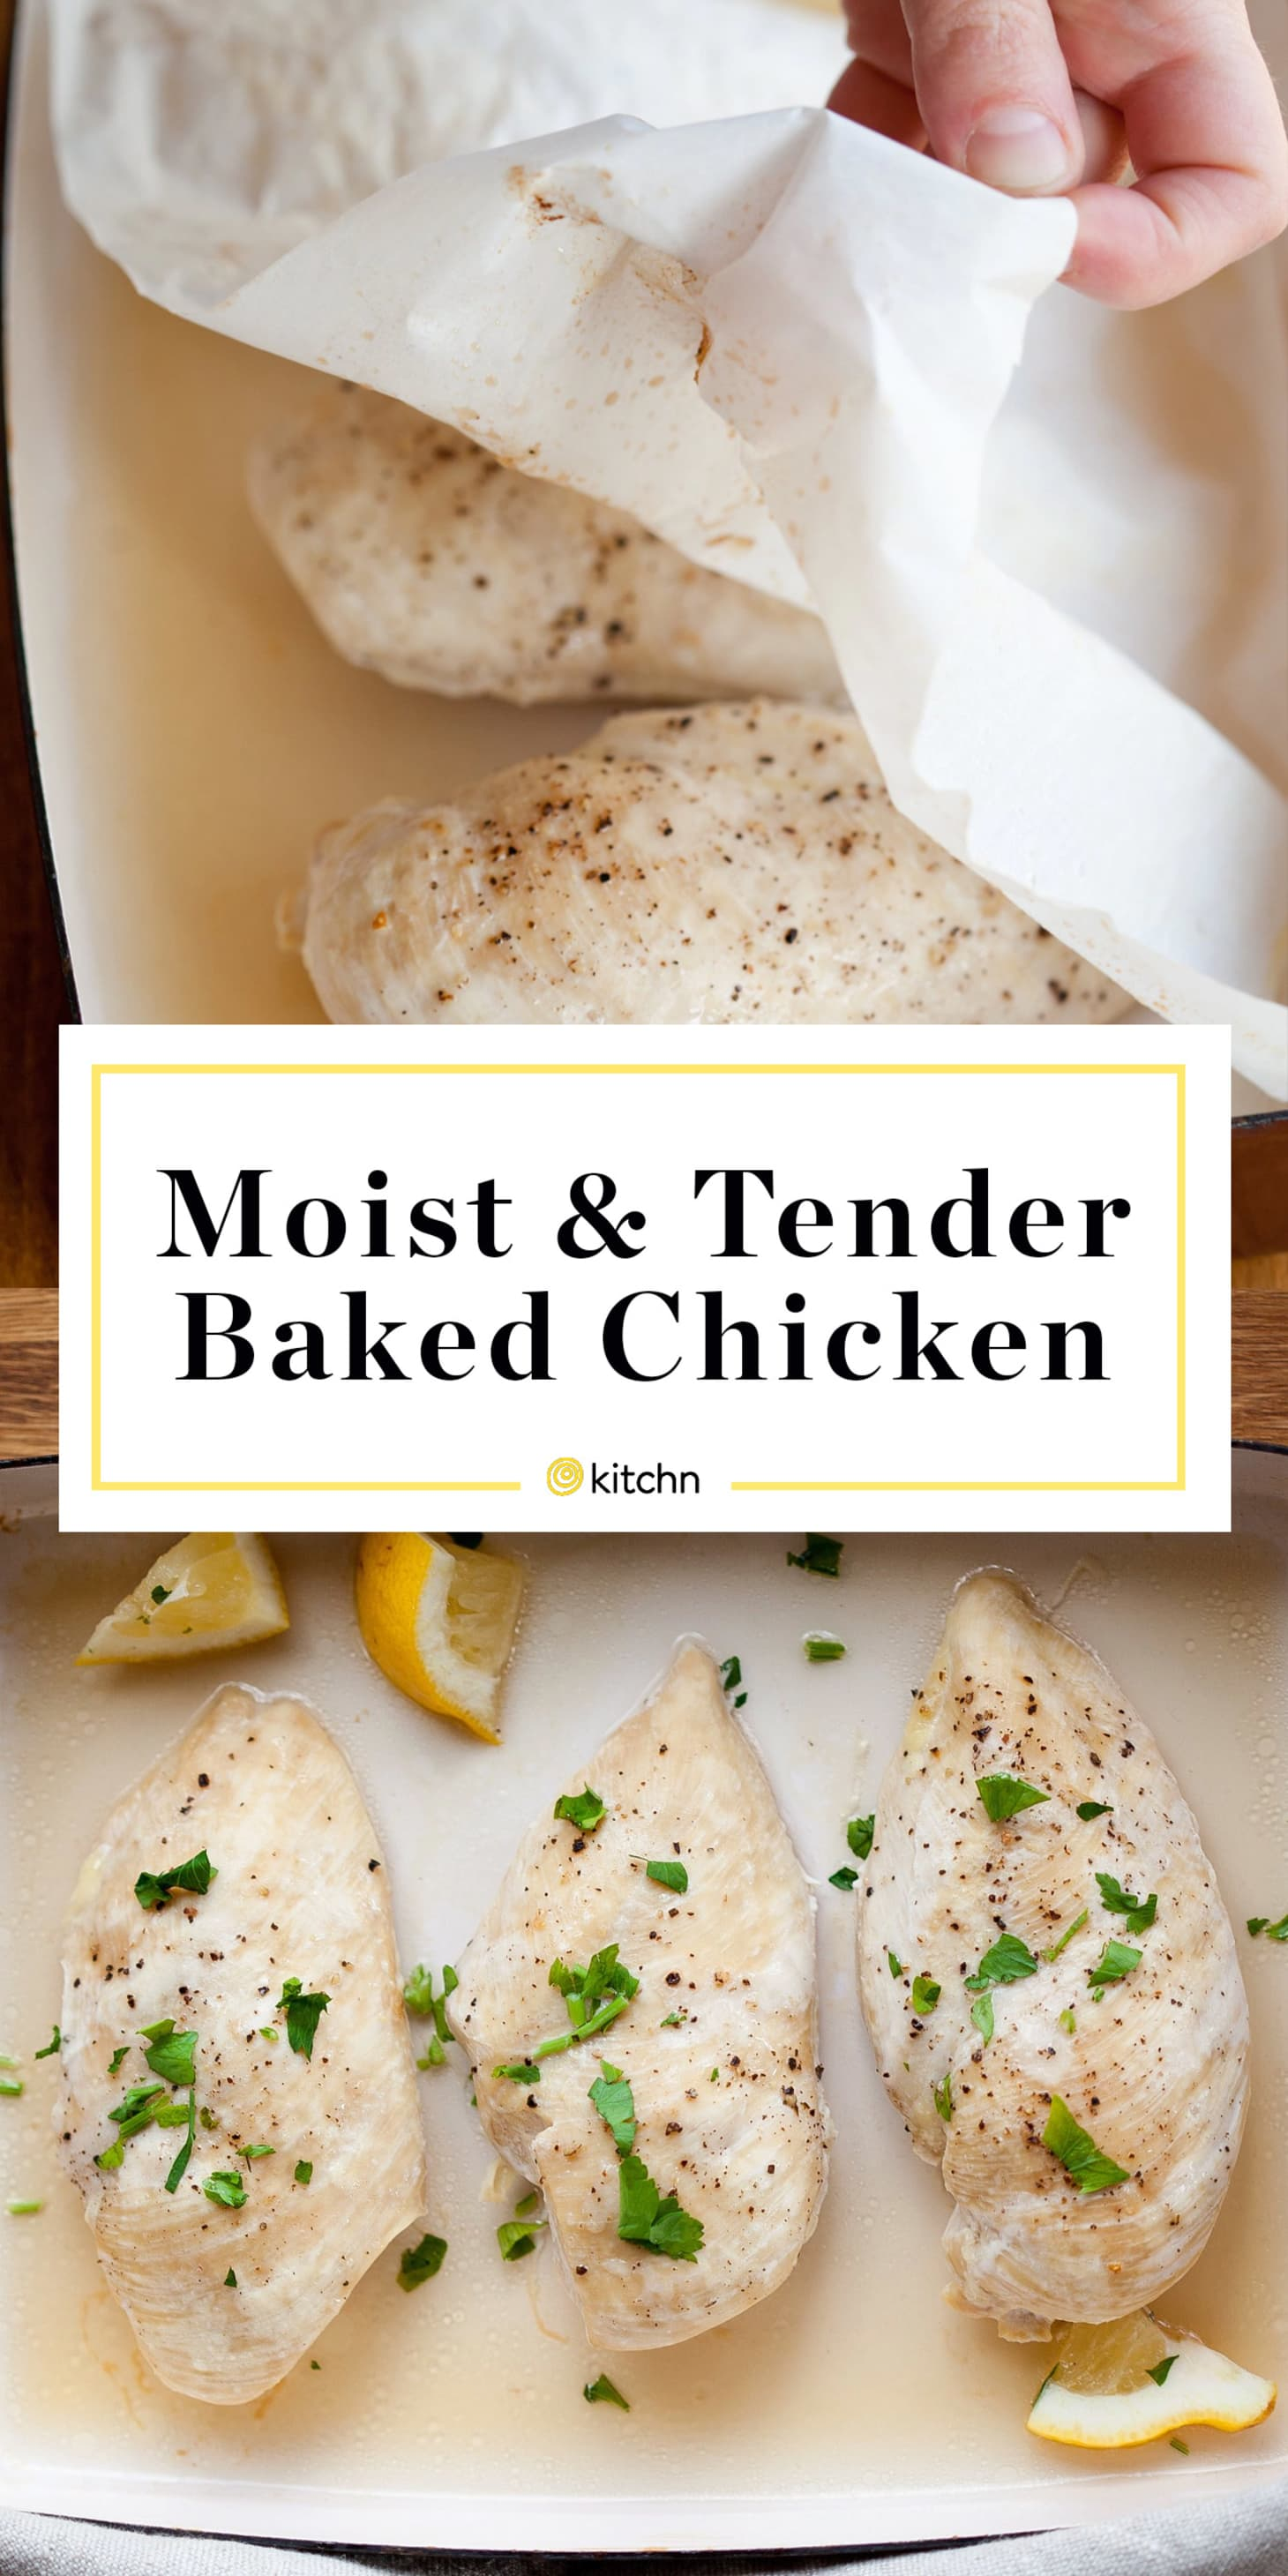 How To Bake Chicken Breasts in the Oven: The Simplest ...